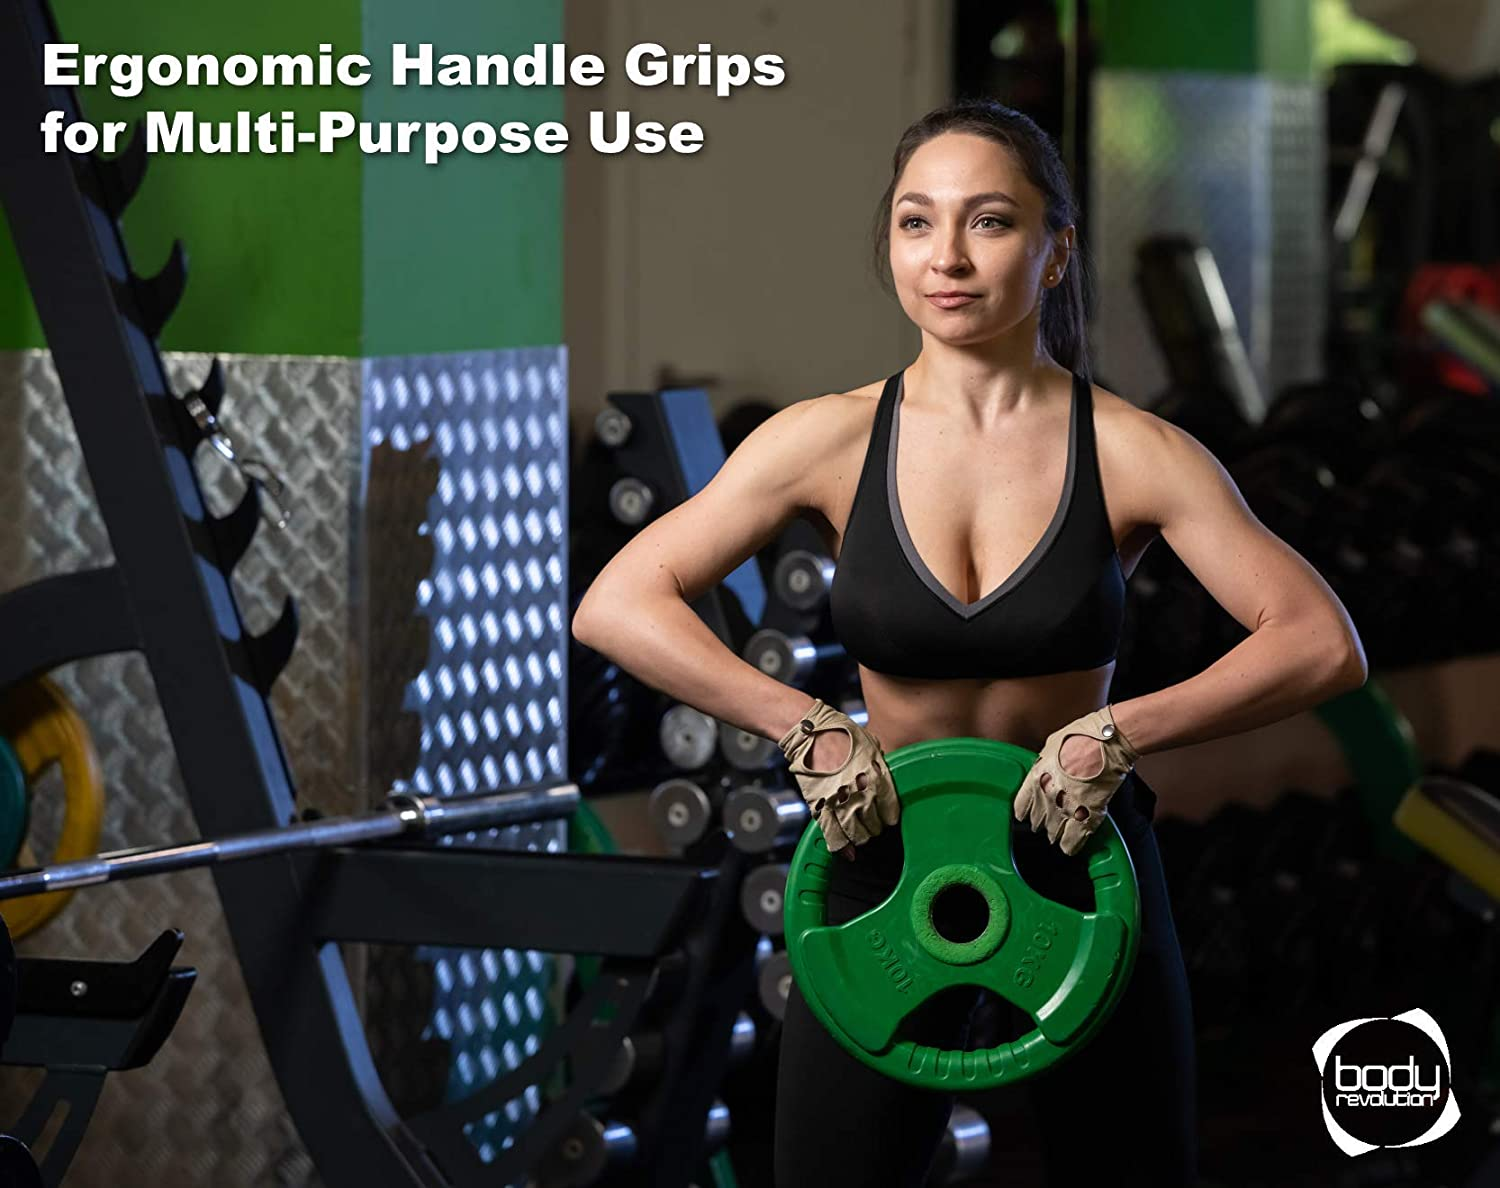 Tri Grip 2 Diameter Barbell weight plates Body Revolution Olympic Weight Plates Rubber Coated Cast Iron Weights Range of Weights Sold Separately